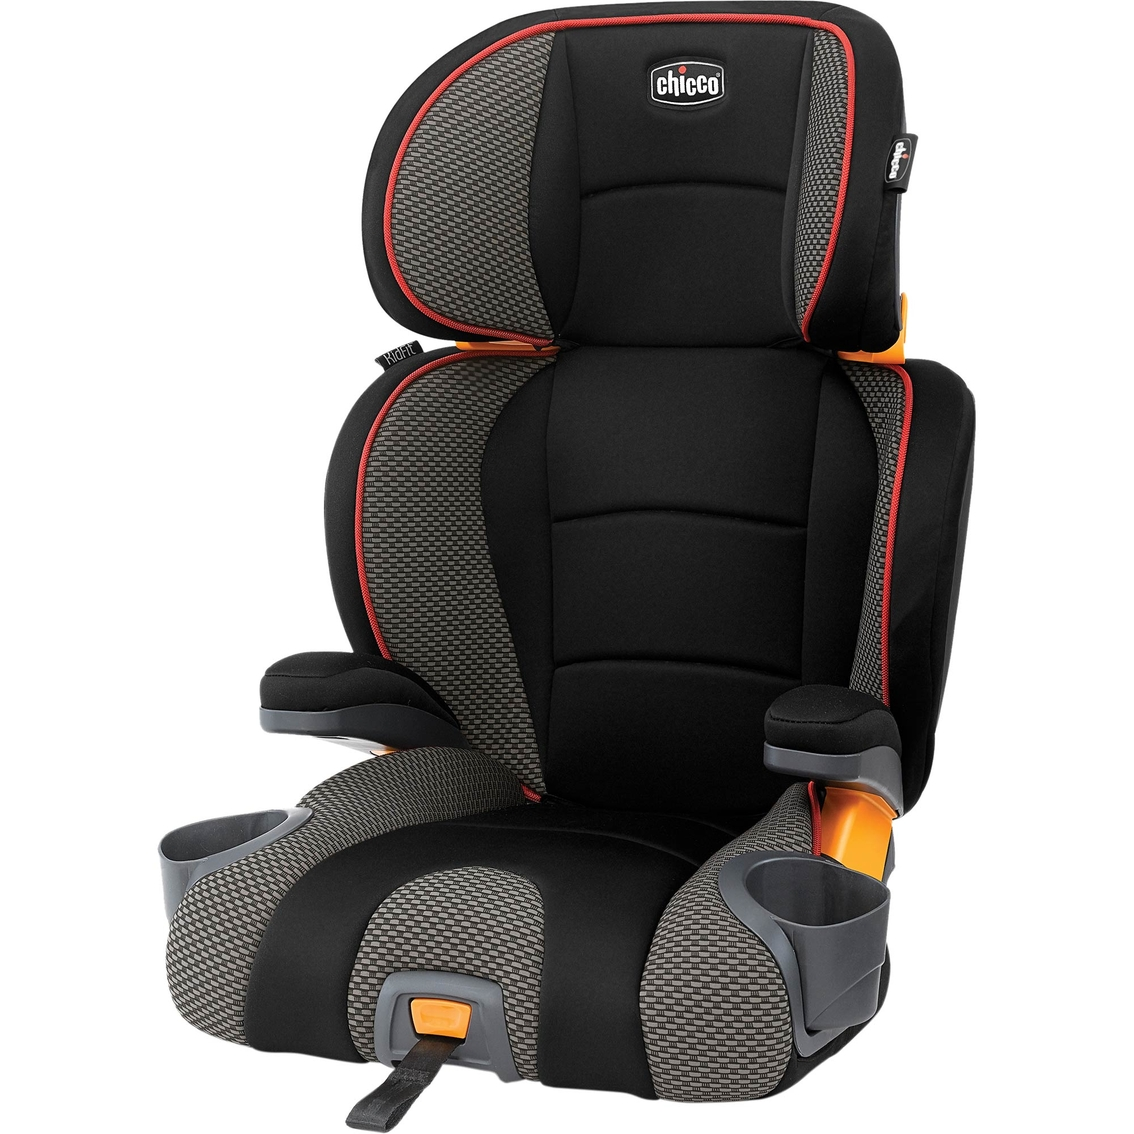 chicco kidfit booster car booster seats baby toys shop the exchange. Black Bedroom Furniture Sets. Home Design Ideas